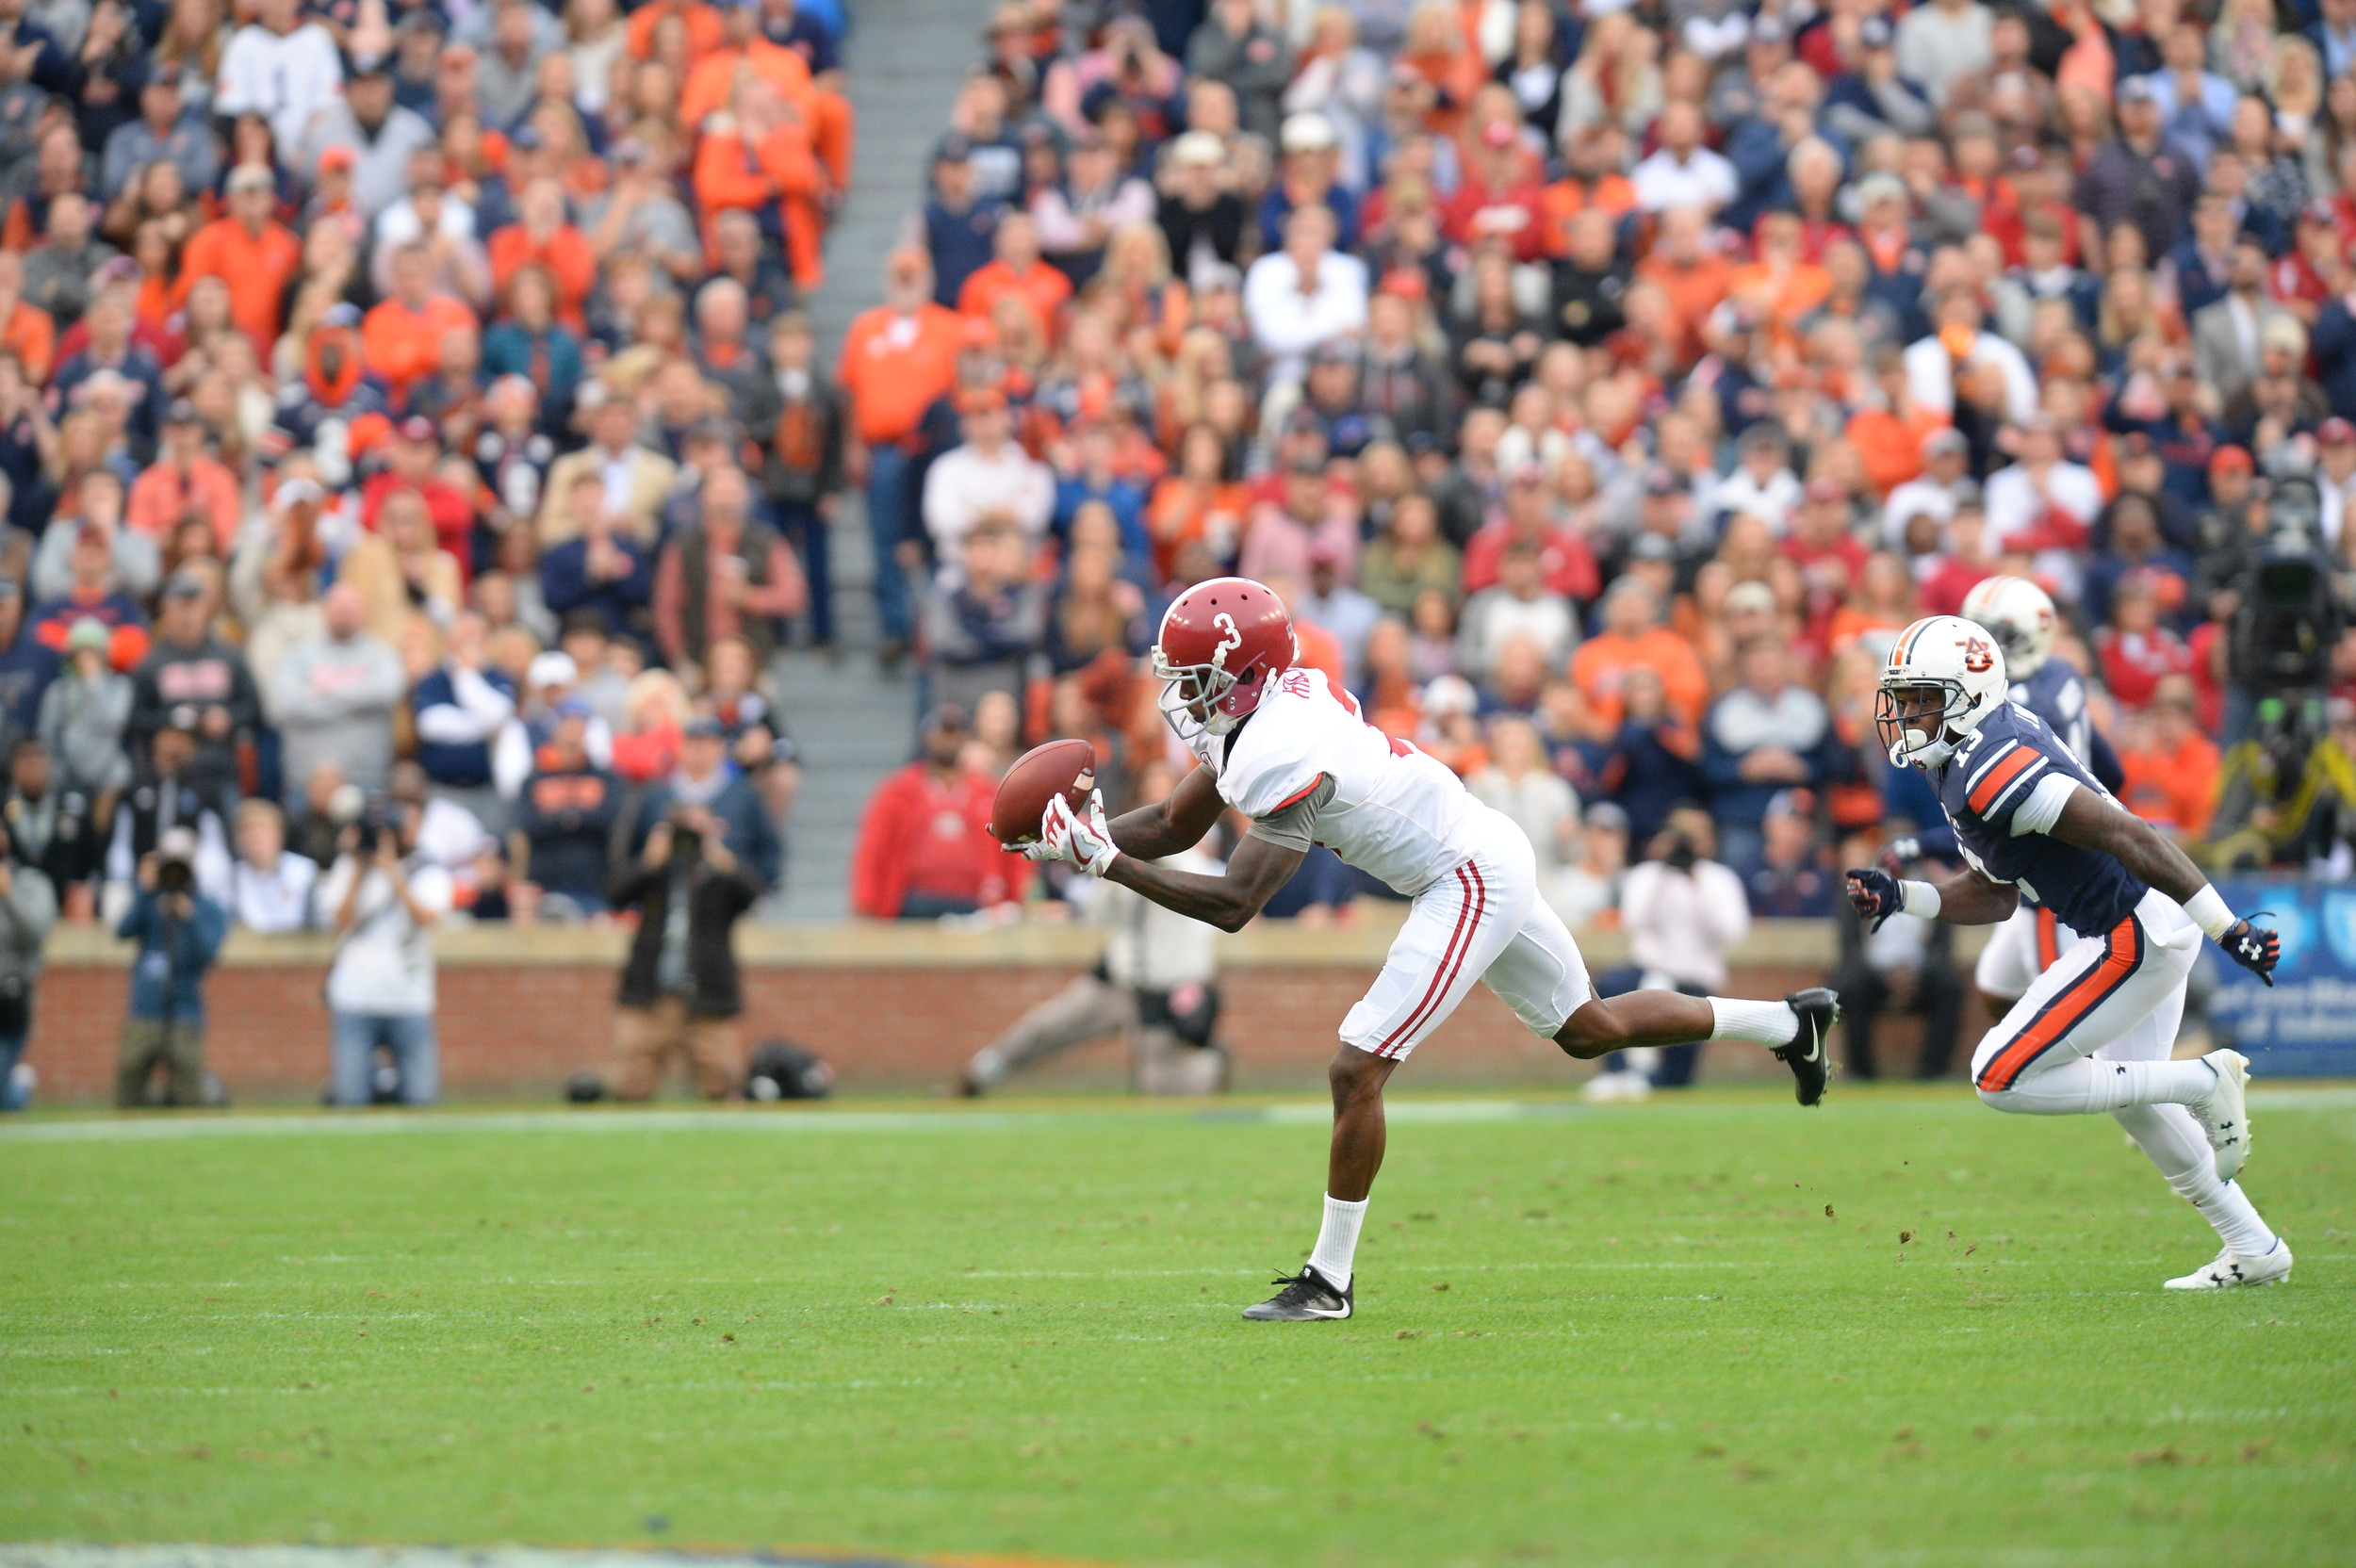 Alabama Crimson Tide wide receiver Calvin Ridley (3) struggles to make the catch in the first half of the NCAA football game between the Alabama Crimson Tide and the Auburn Tigers on Nov. 25, 2017, at Jordan-Hare Stadium in Auburn, Ala. (Photo by Jeff Johnsey)